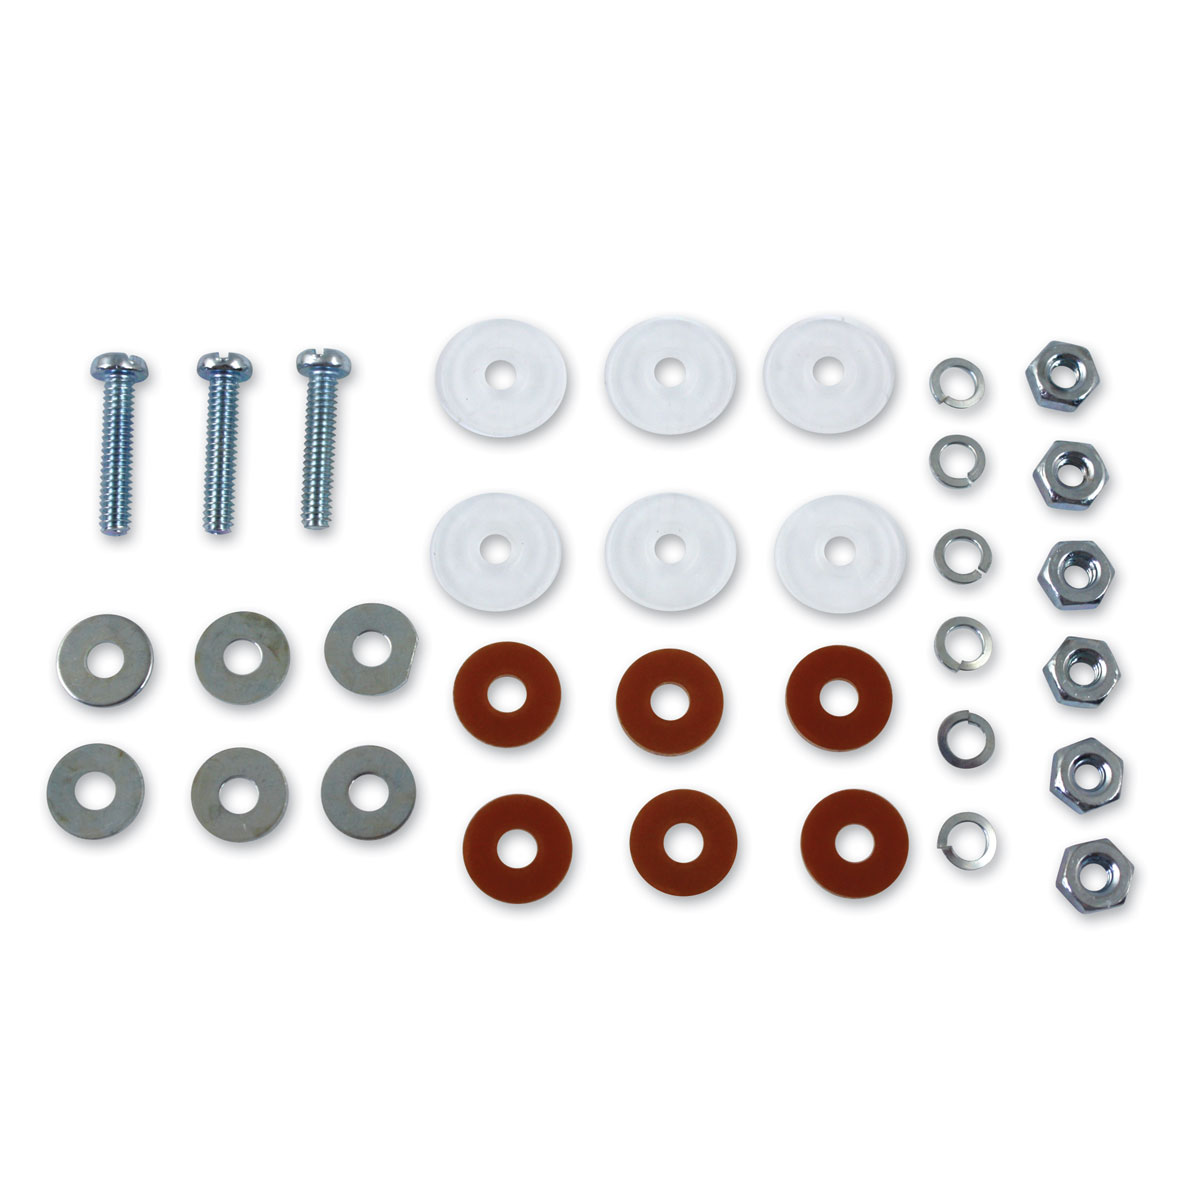 V-Twin Manufacturing Dash Base Wiring Insulator and Bolt Kit